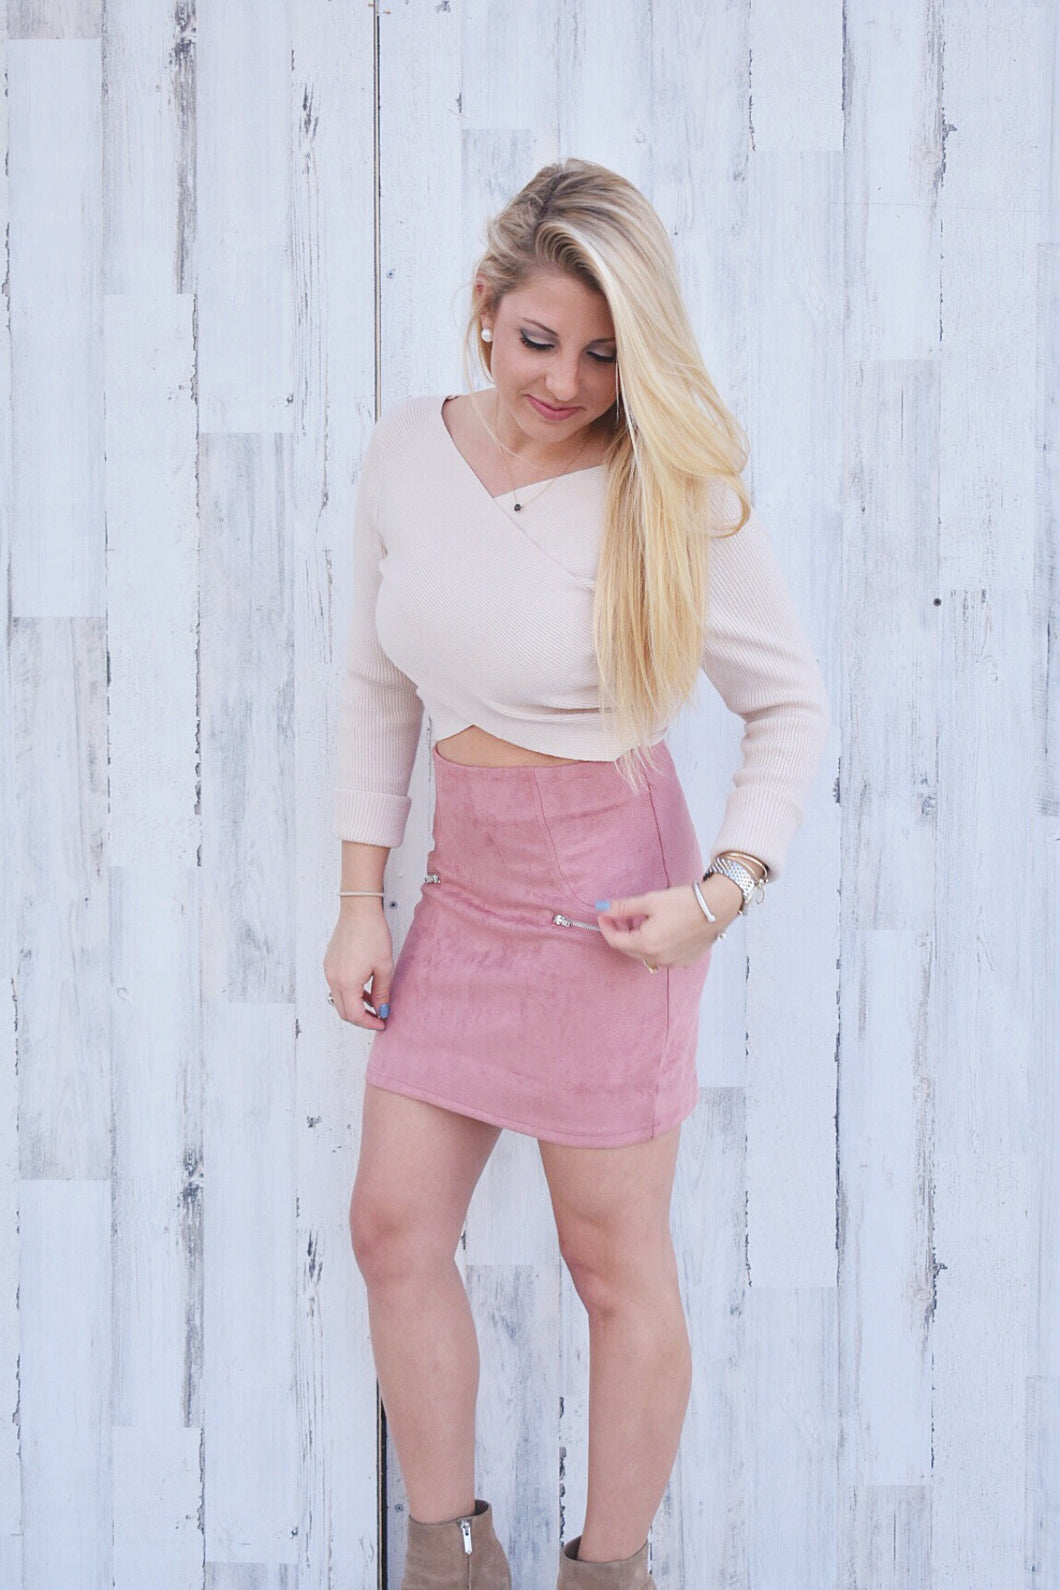 The Dusty Rose Suede Skirt